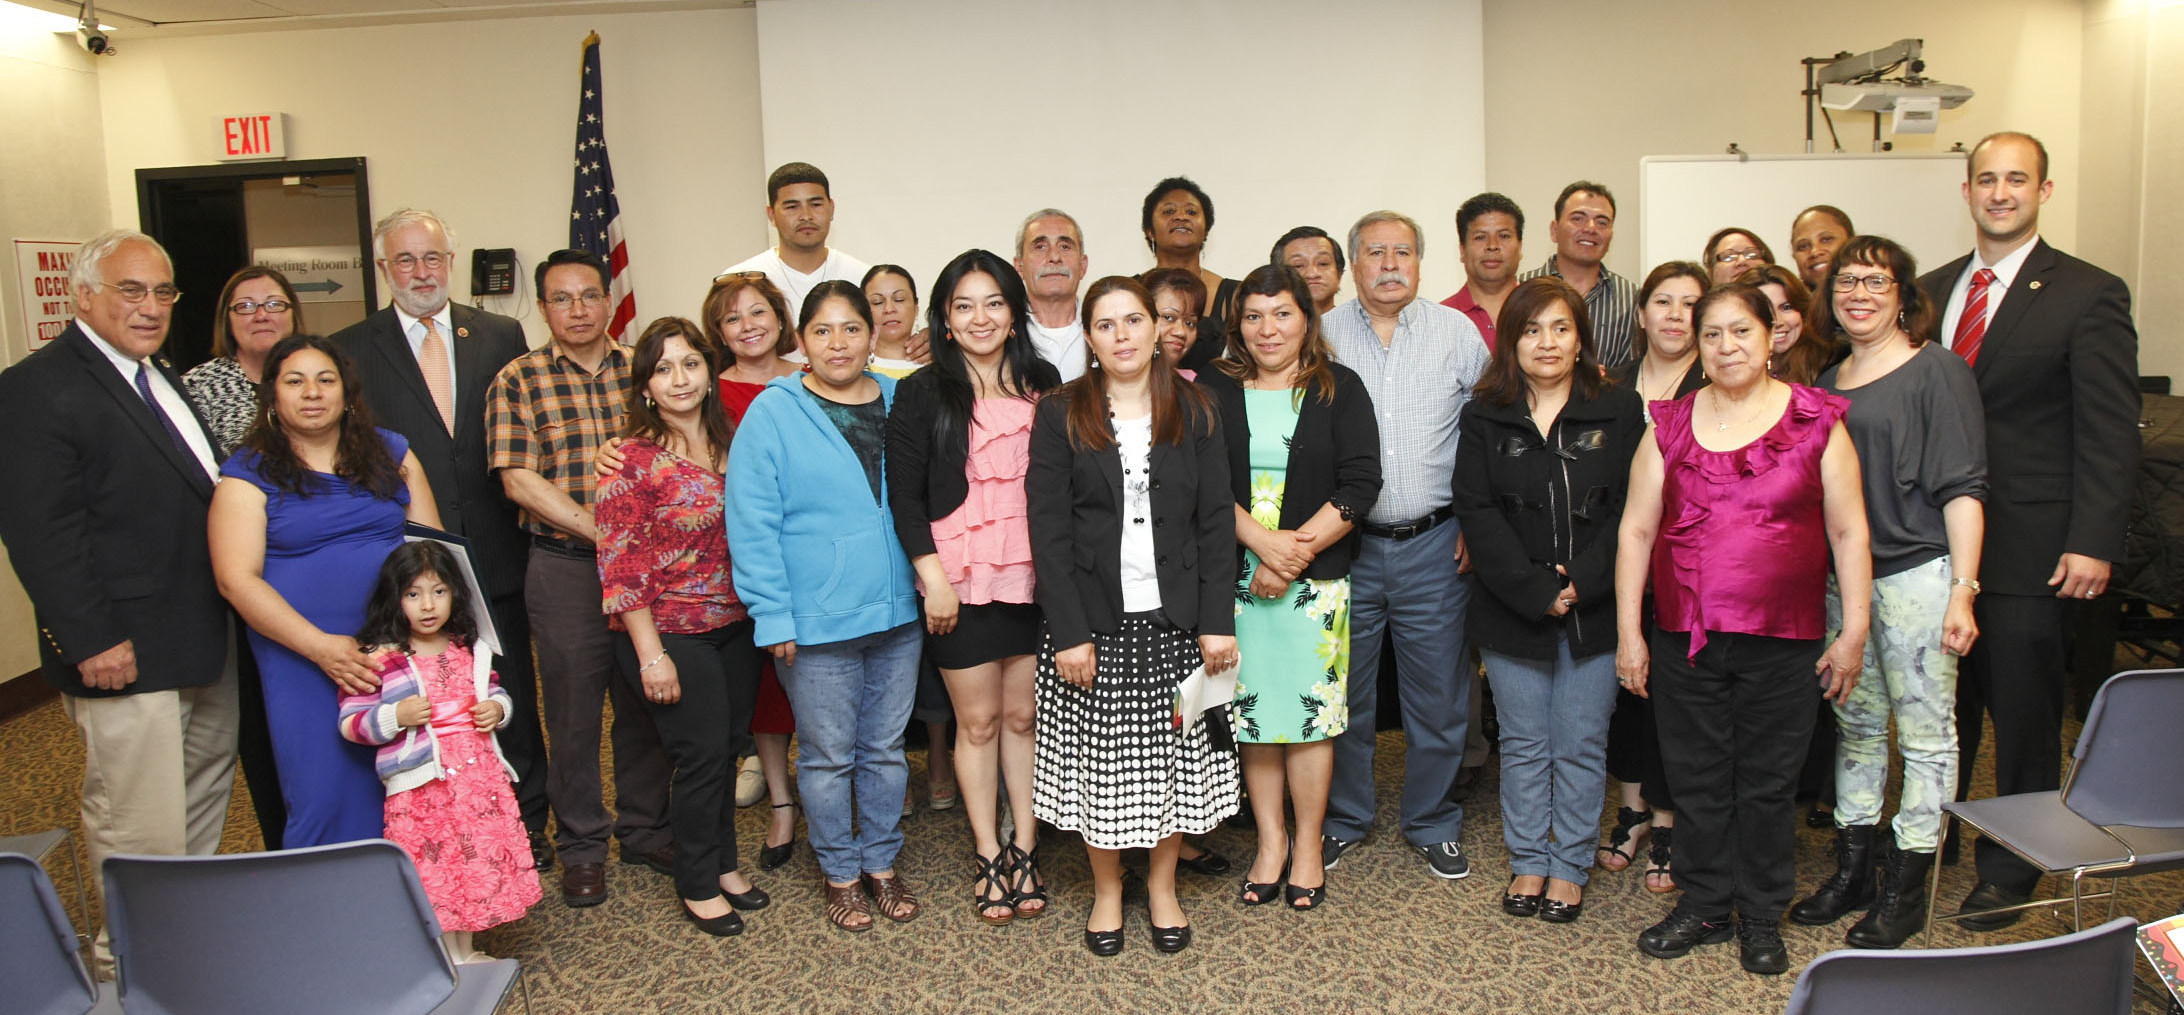 Medford (NY) United States  city photo : 26 NEW UNITED STATES CITIZENS WELCOMED AT PATCHOGUE MEDFORD CEREMONY ...